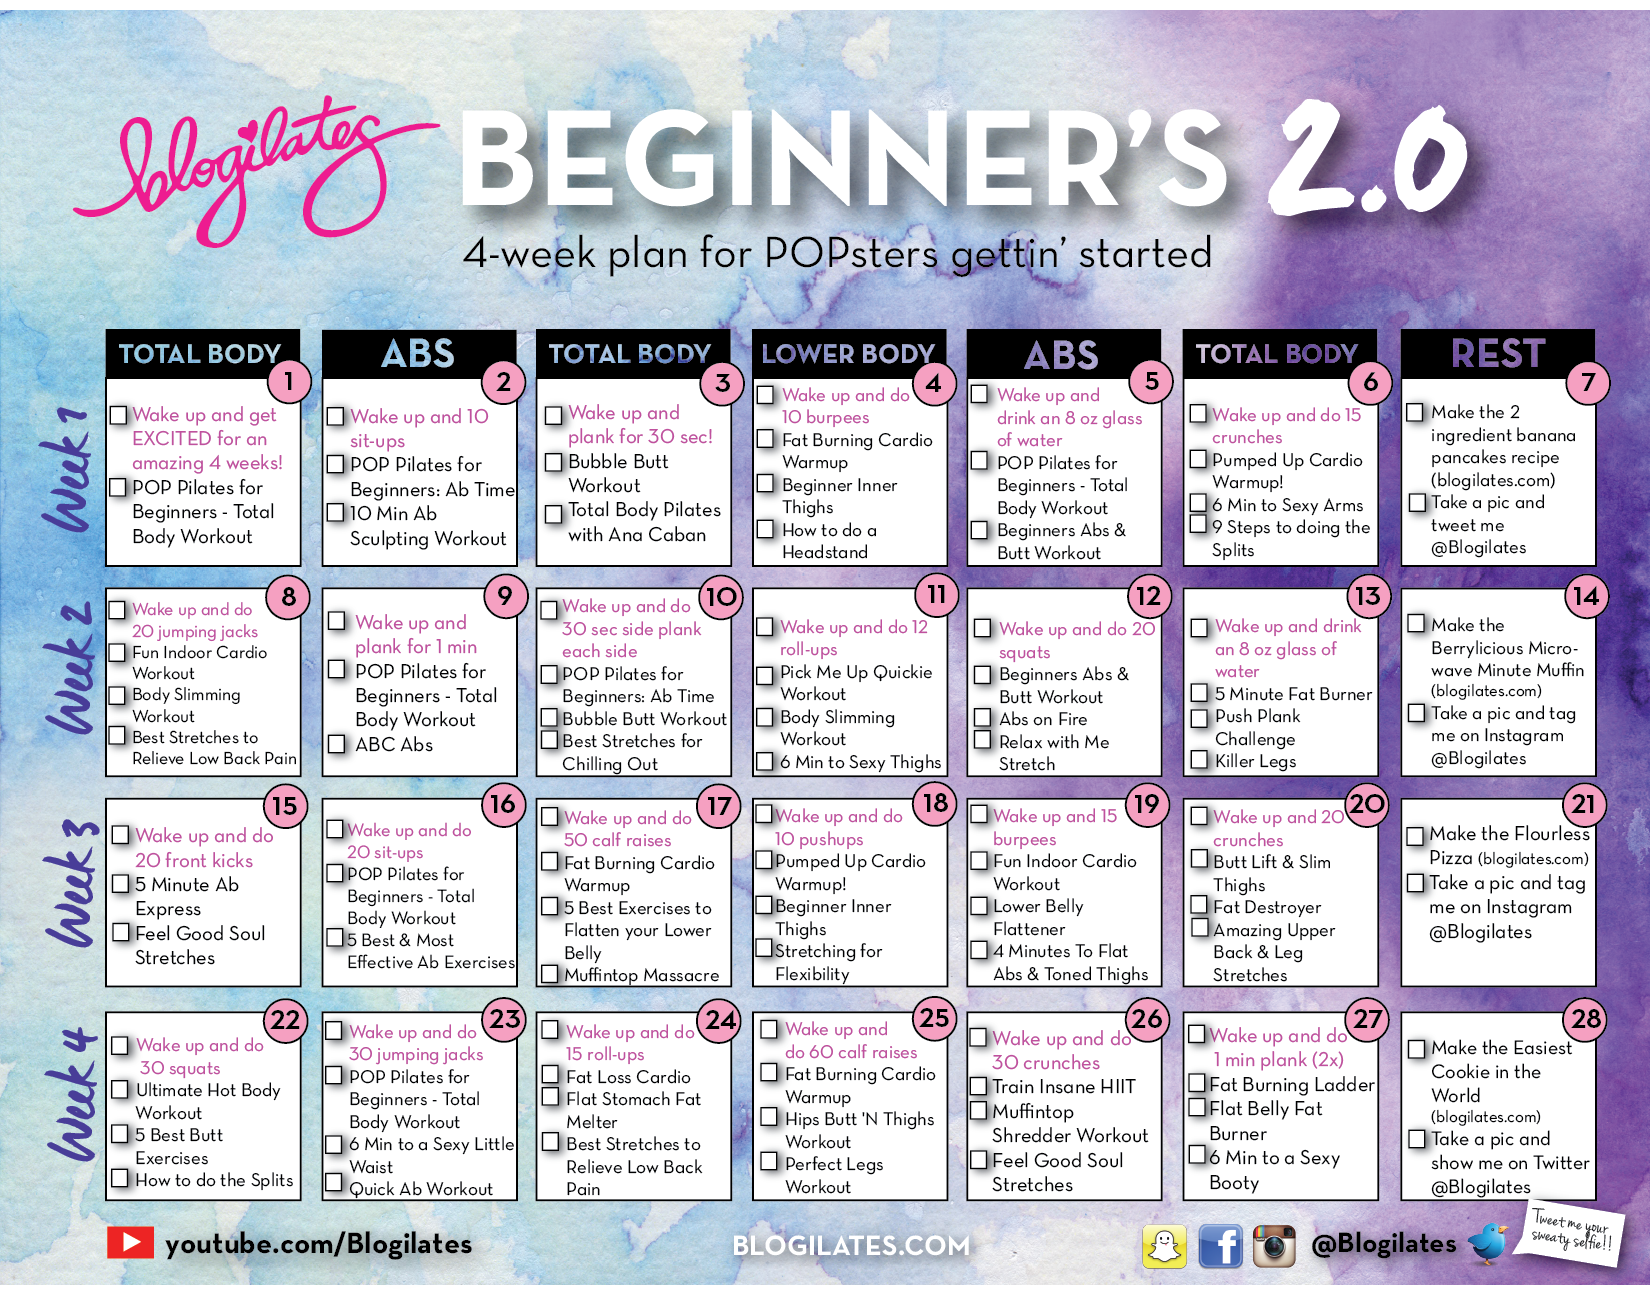 New beginners calendar 20 blogilates print the calendar and hang it solutioingenieria Image collections